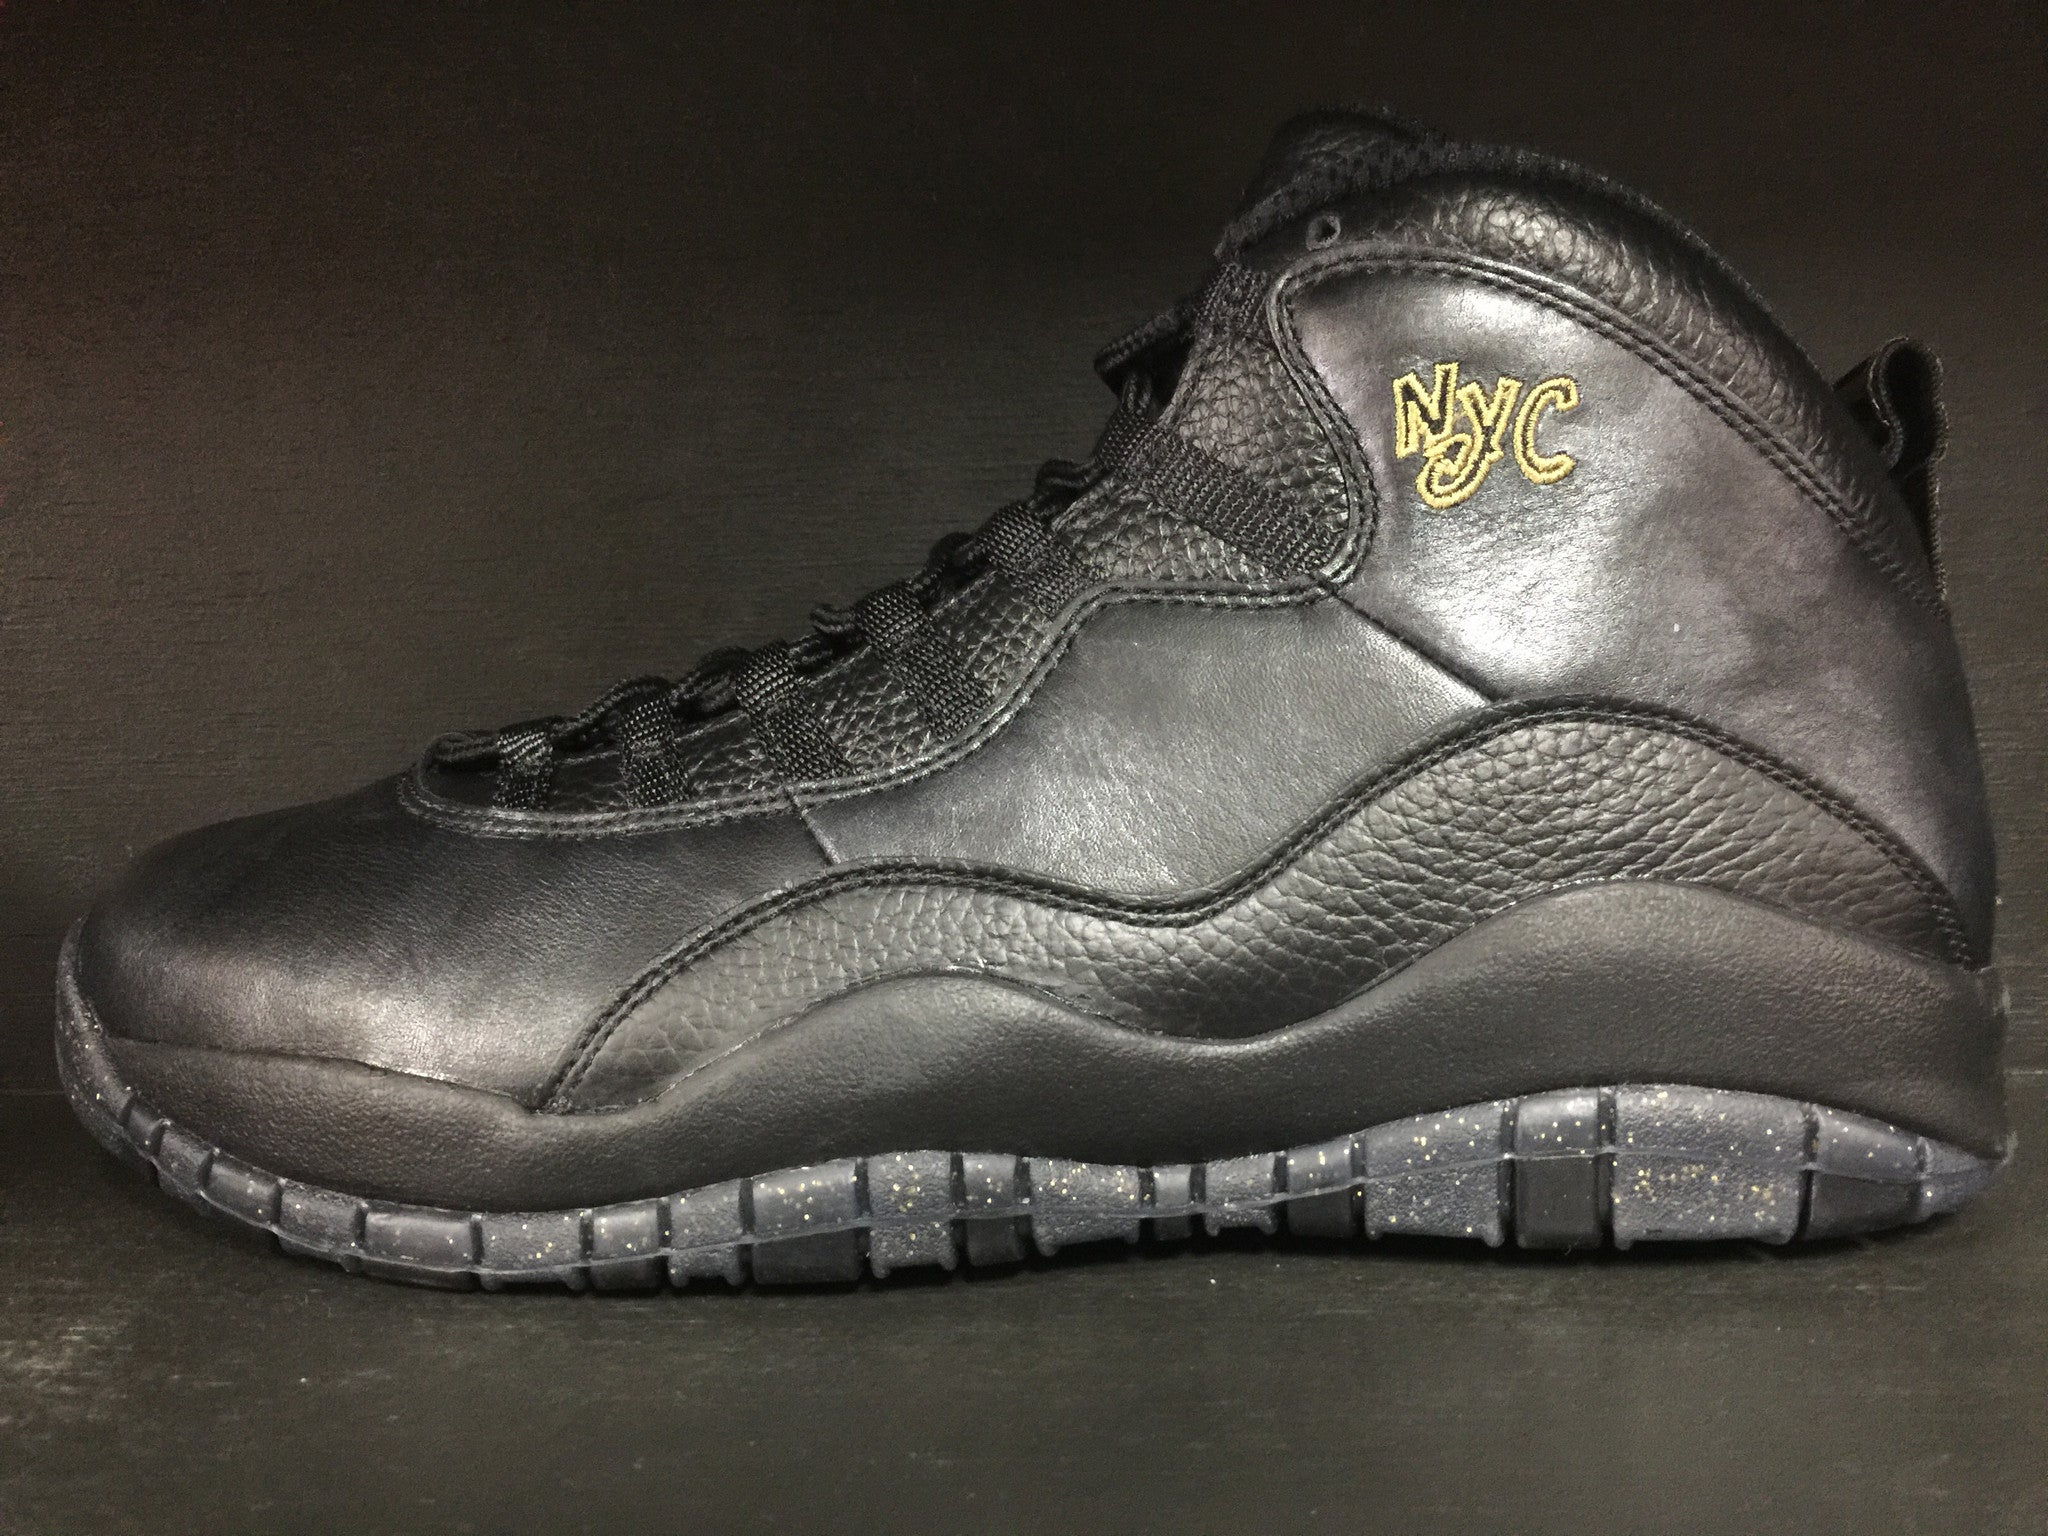 Air Jordan 10 Retro 'NYC' 2016